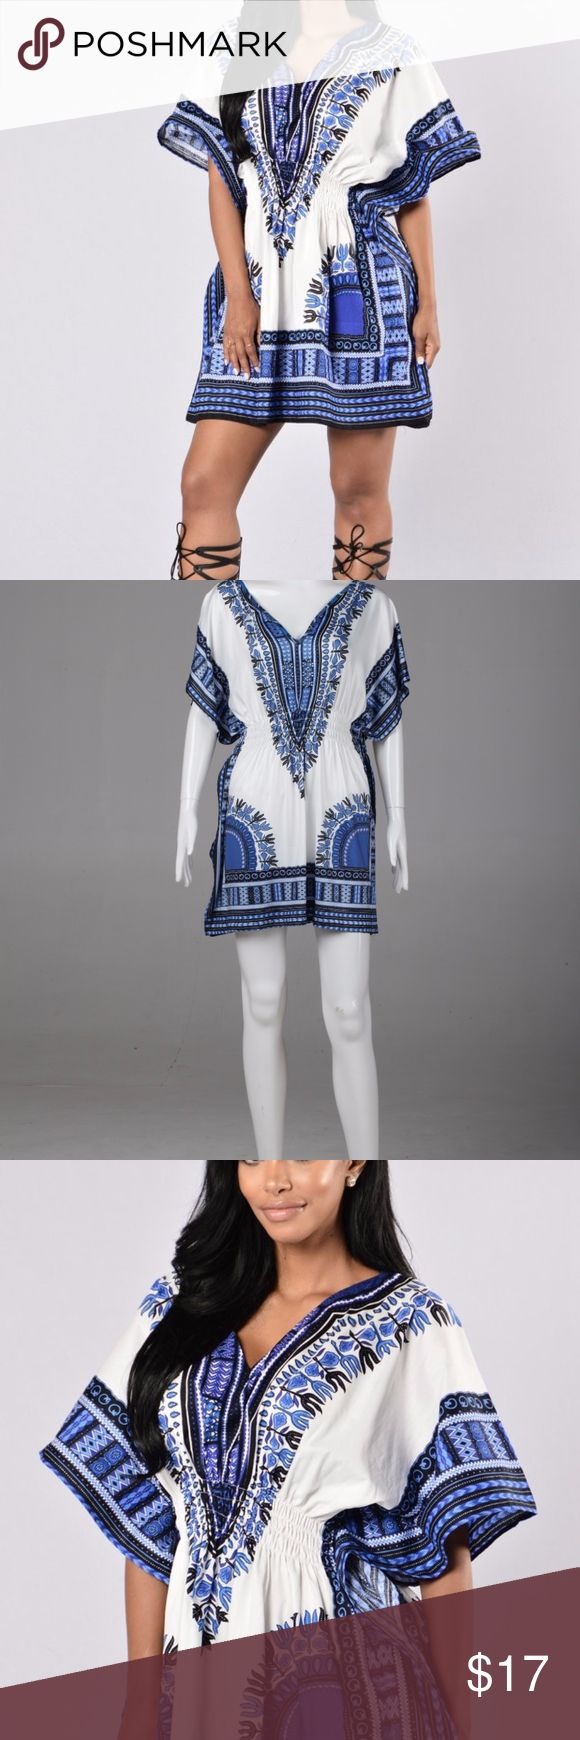 AFRICAN DASHIKI SHIRT, LARGE SIZE THIS IS A LARGE SHIRT VERY BEAUTIFUL. SPANDEX ELASTIC FABRIC THEREFORE CAN FIT EXTRA LARGE SIZE AS WELL  CAN BE WORN WITH LEGGINGS Tops Tees - Short Sleeve